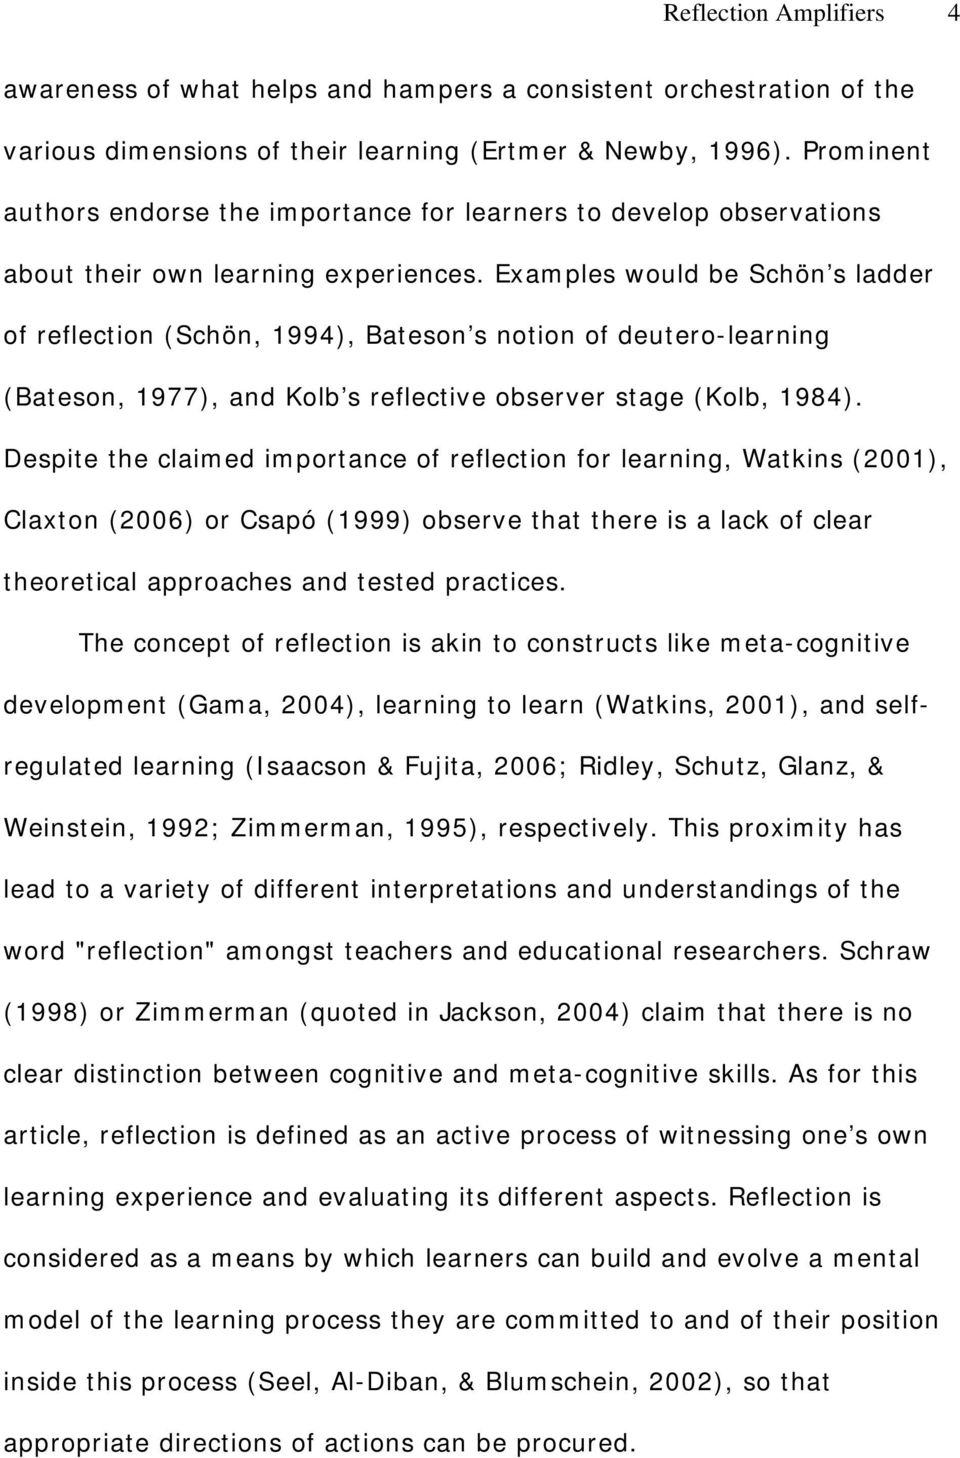 Examples would be Schön s ladder of reflection (Schön, 1994), Bateson s notion of deutero-learning (Bateson, 1977), and Kolb s reflective observer stage (Kolb, 1984).